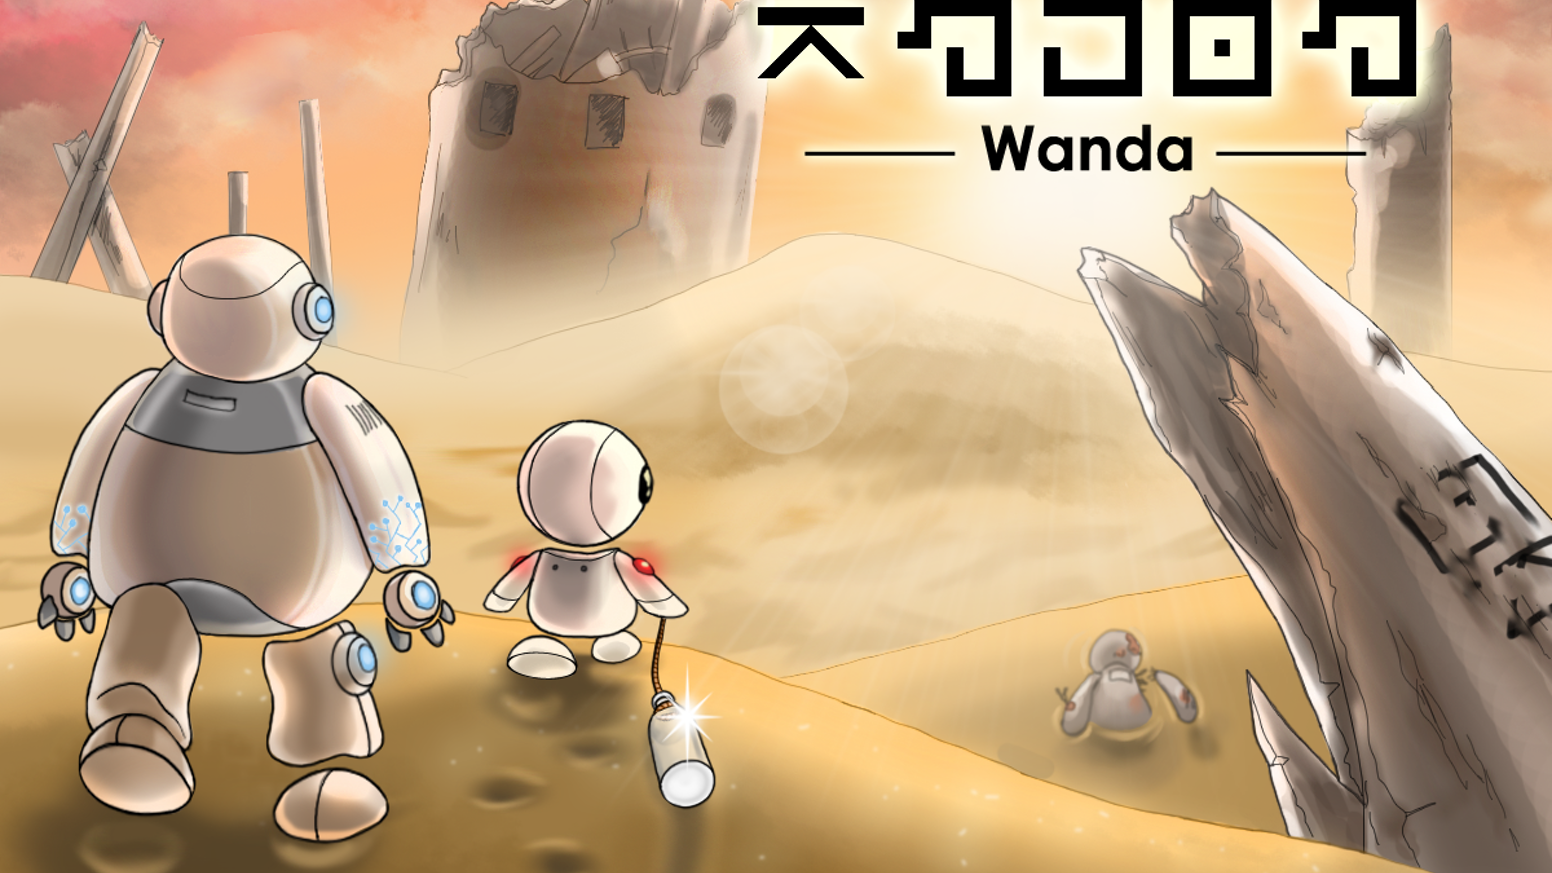 Wanda is a story-focused puzzle game for PC about two lonely robots finding hope and friendship on a ruined planet.